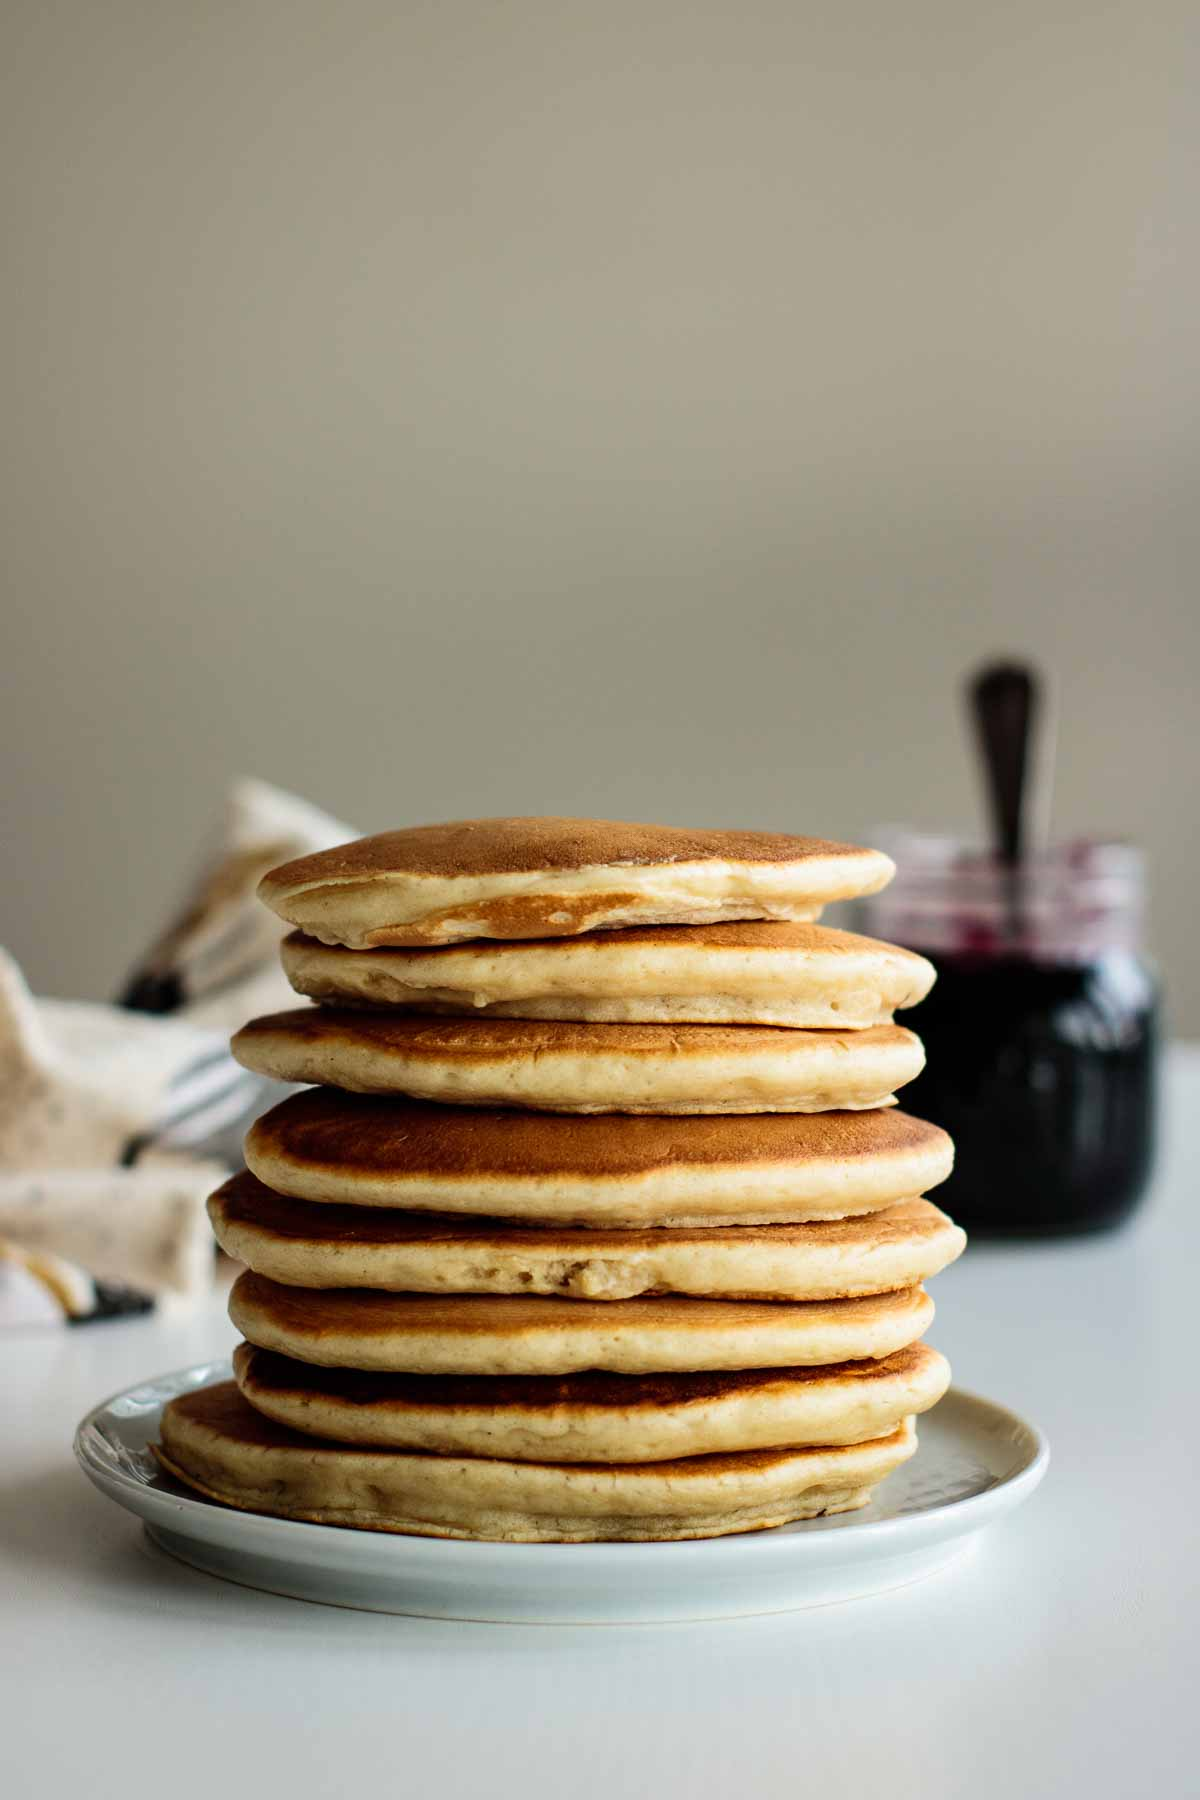 a stack of almond milk pancakes on a plate, with a jar of blueberry compote on the back